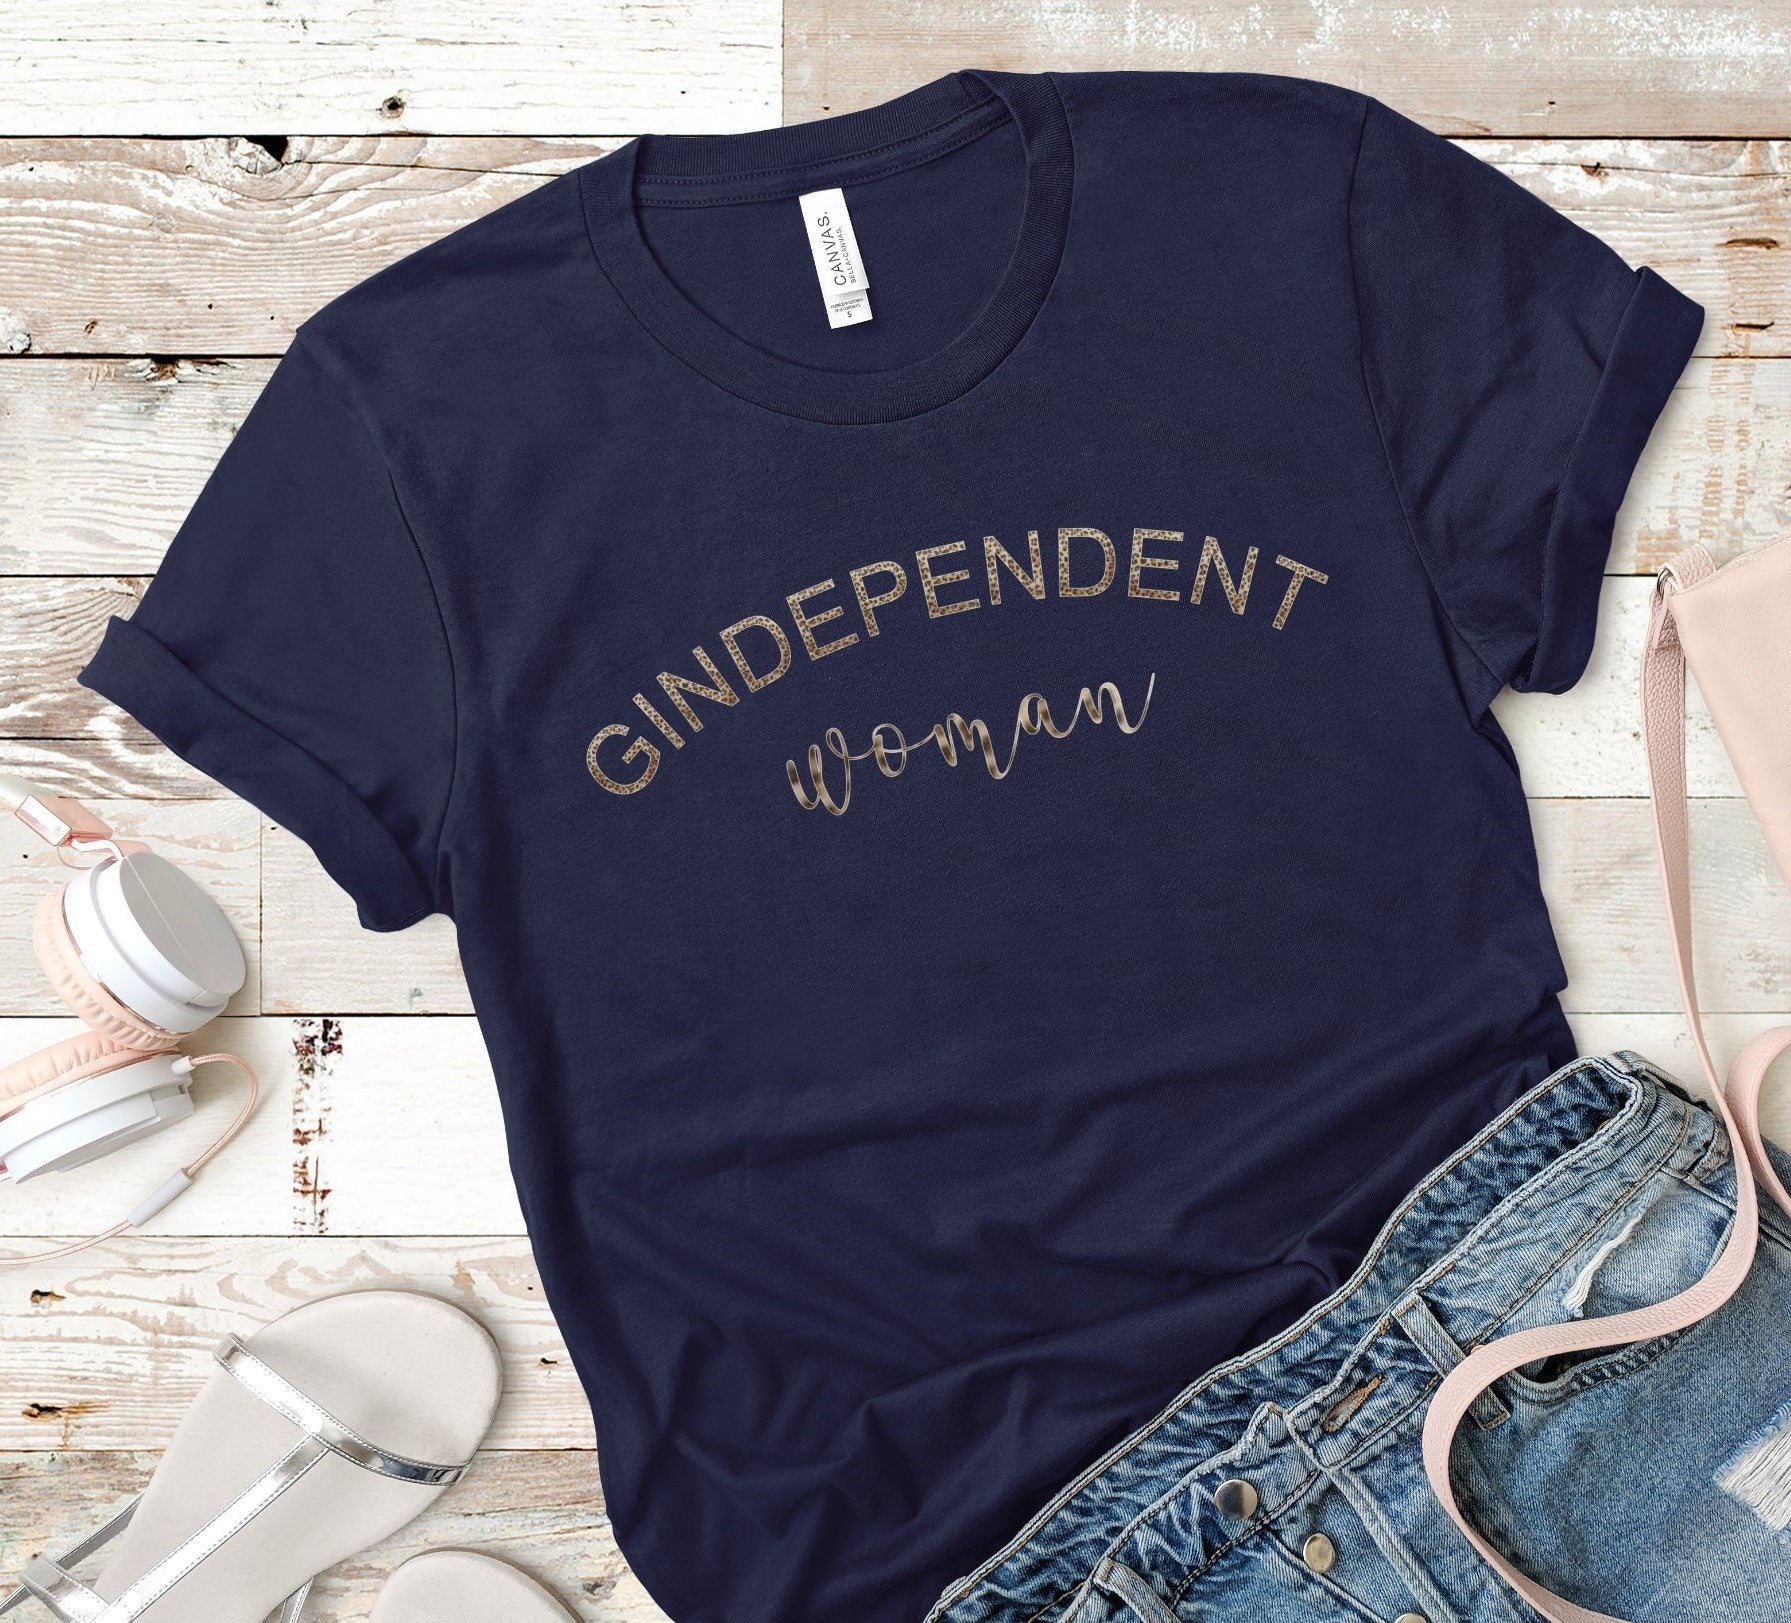 Gindependent Woman T-Shirt